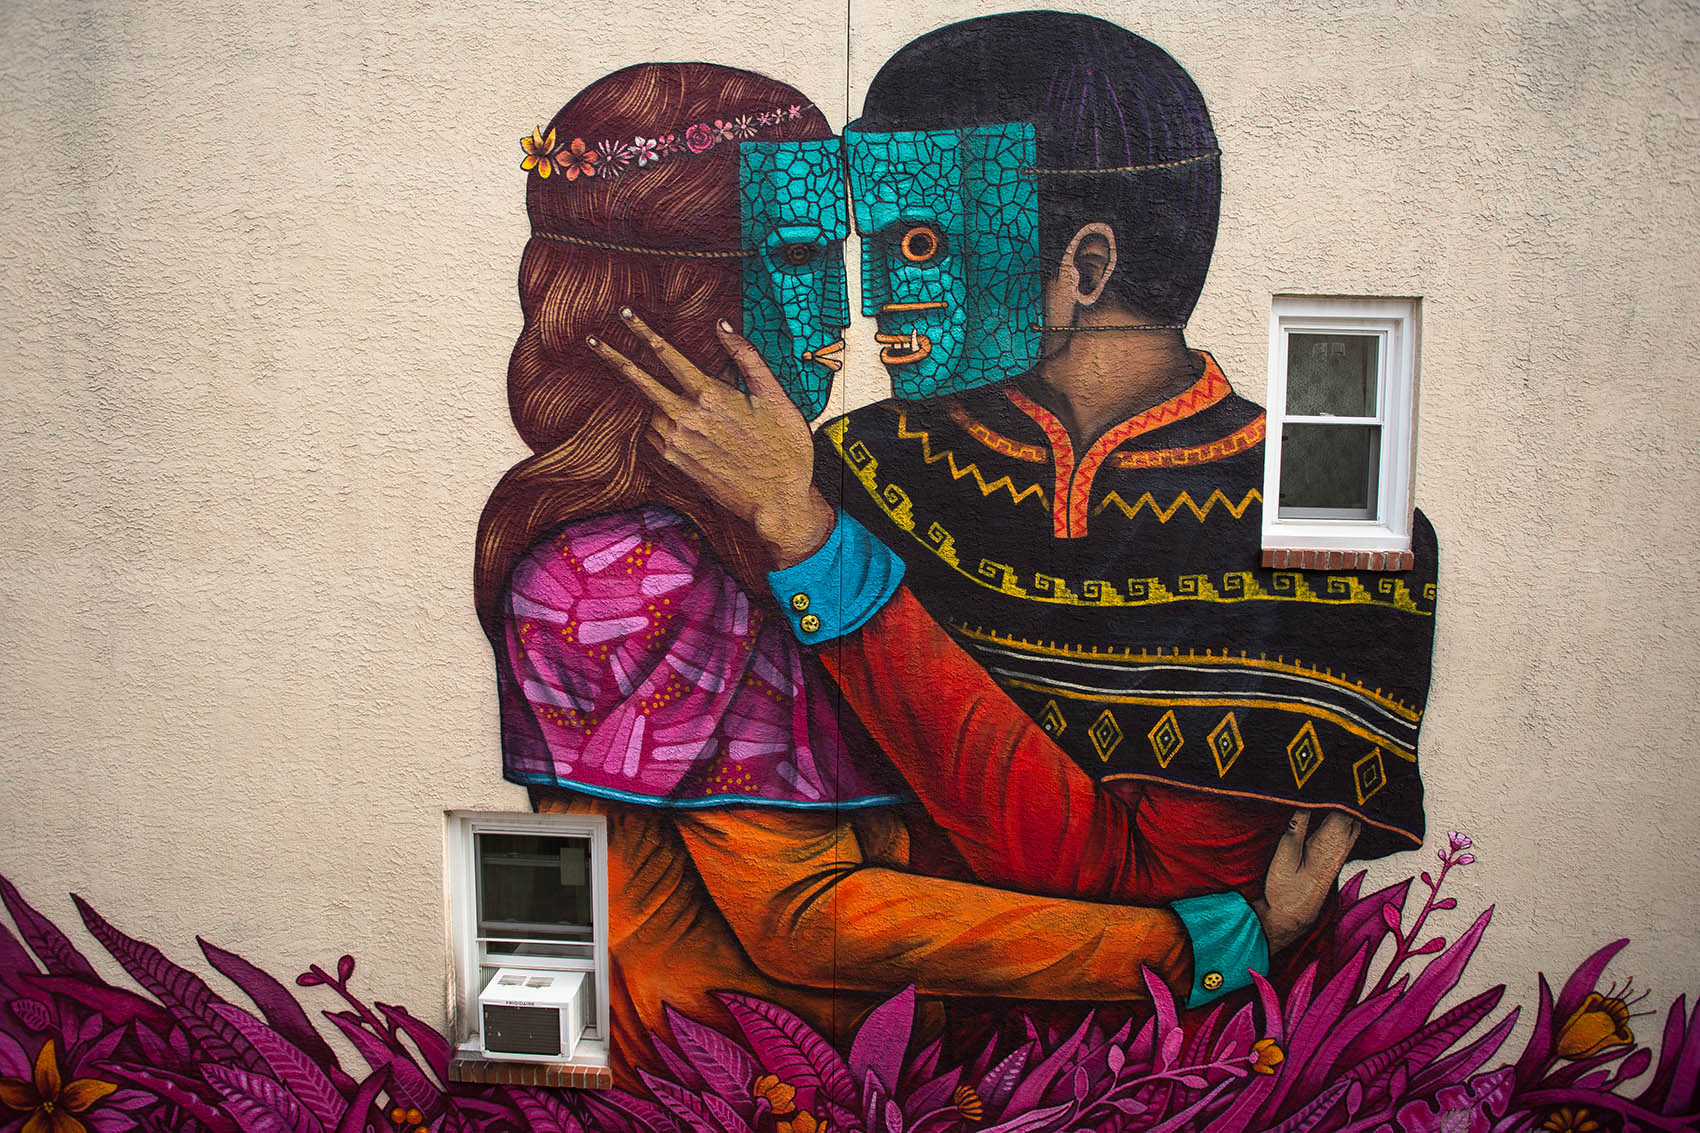 Philos and Adelphos  by Saner for  Mural Arts Philadelphia . Philadelphia, PA. 2015. Photo by Steve Weinik. (project manager)